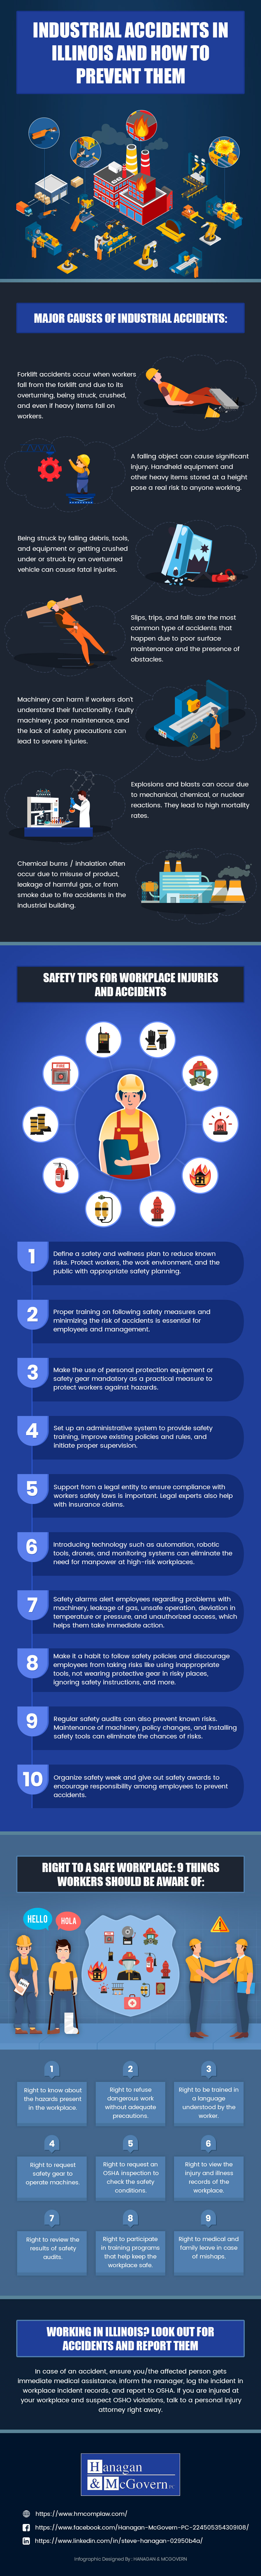 Illinois State's Record of Industrial Accidents and Strategies for Prevention - Infographic